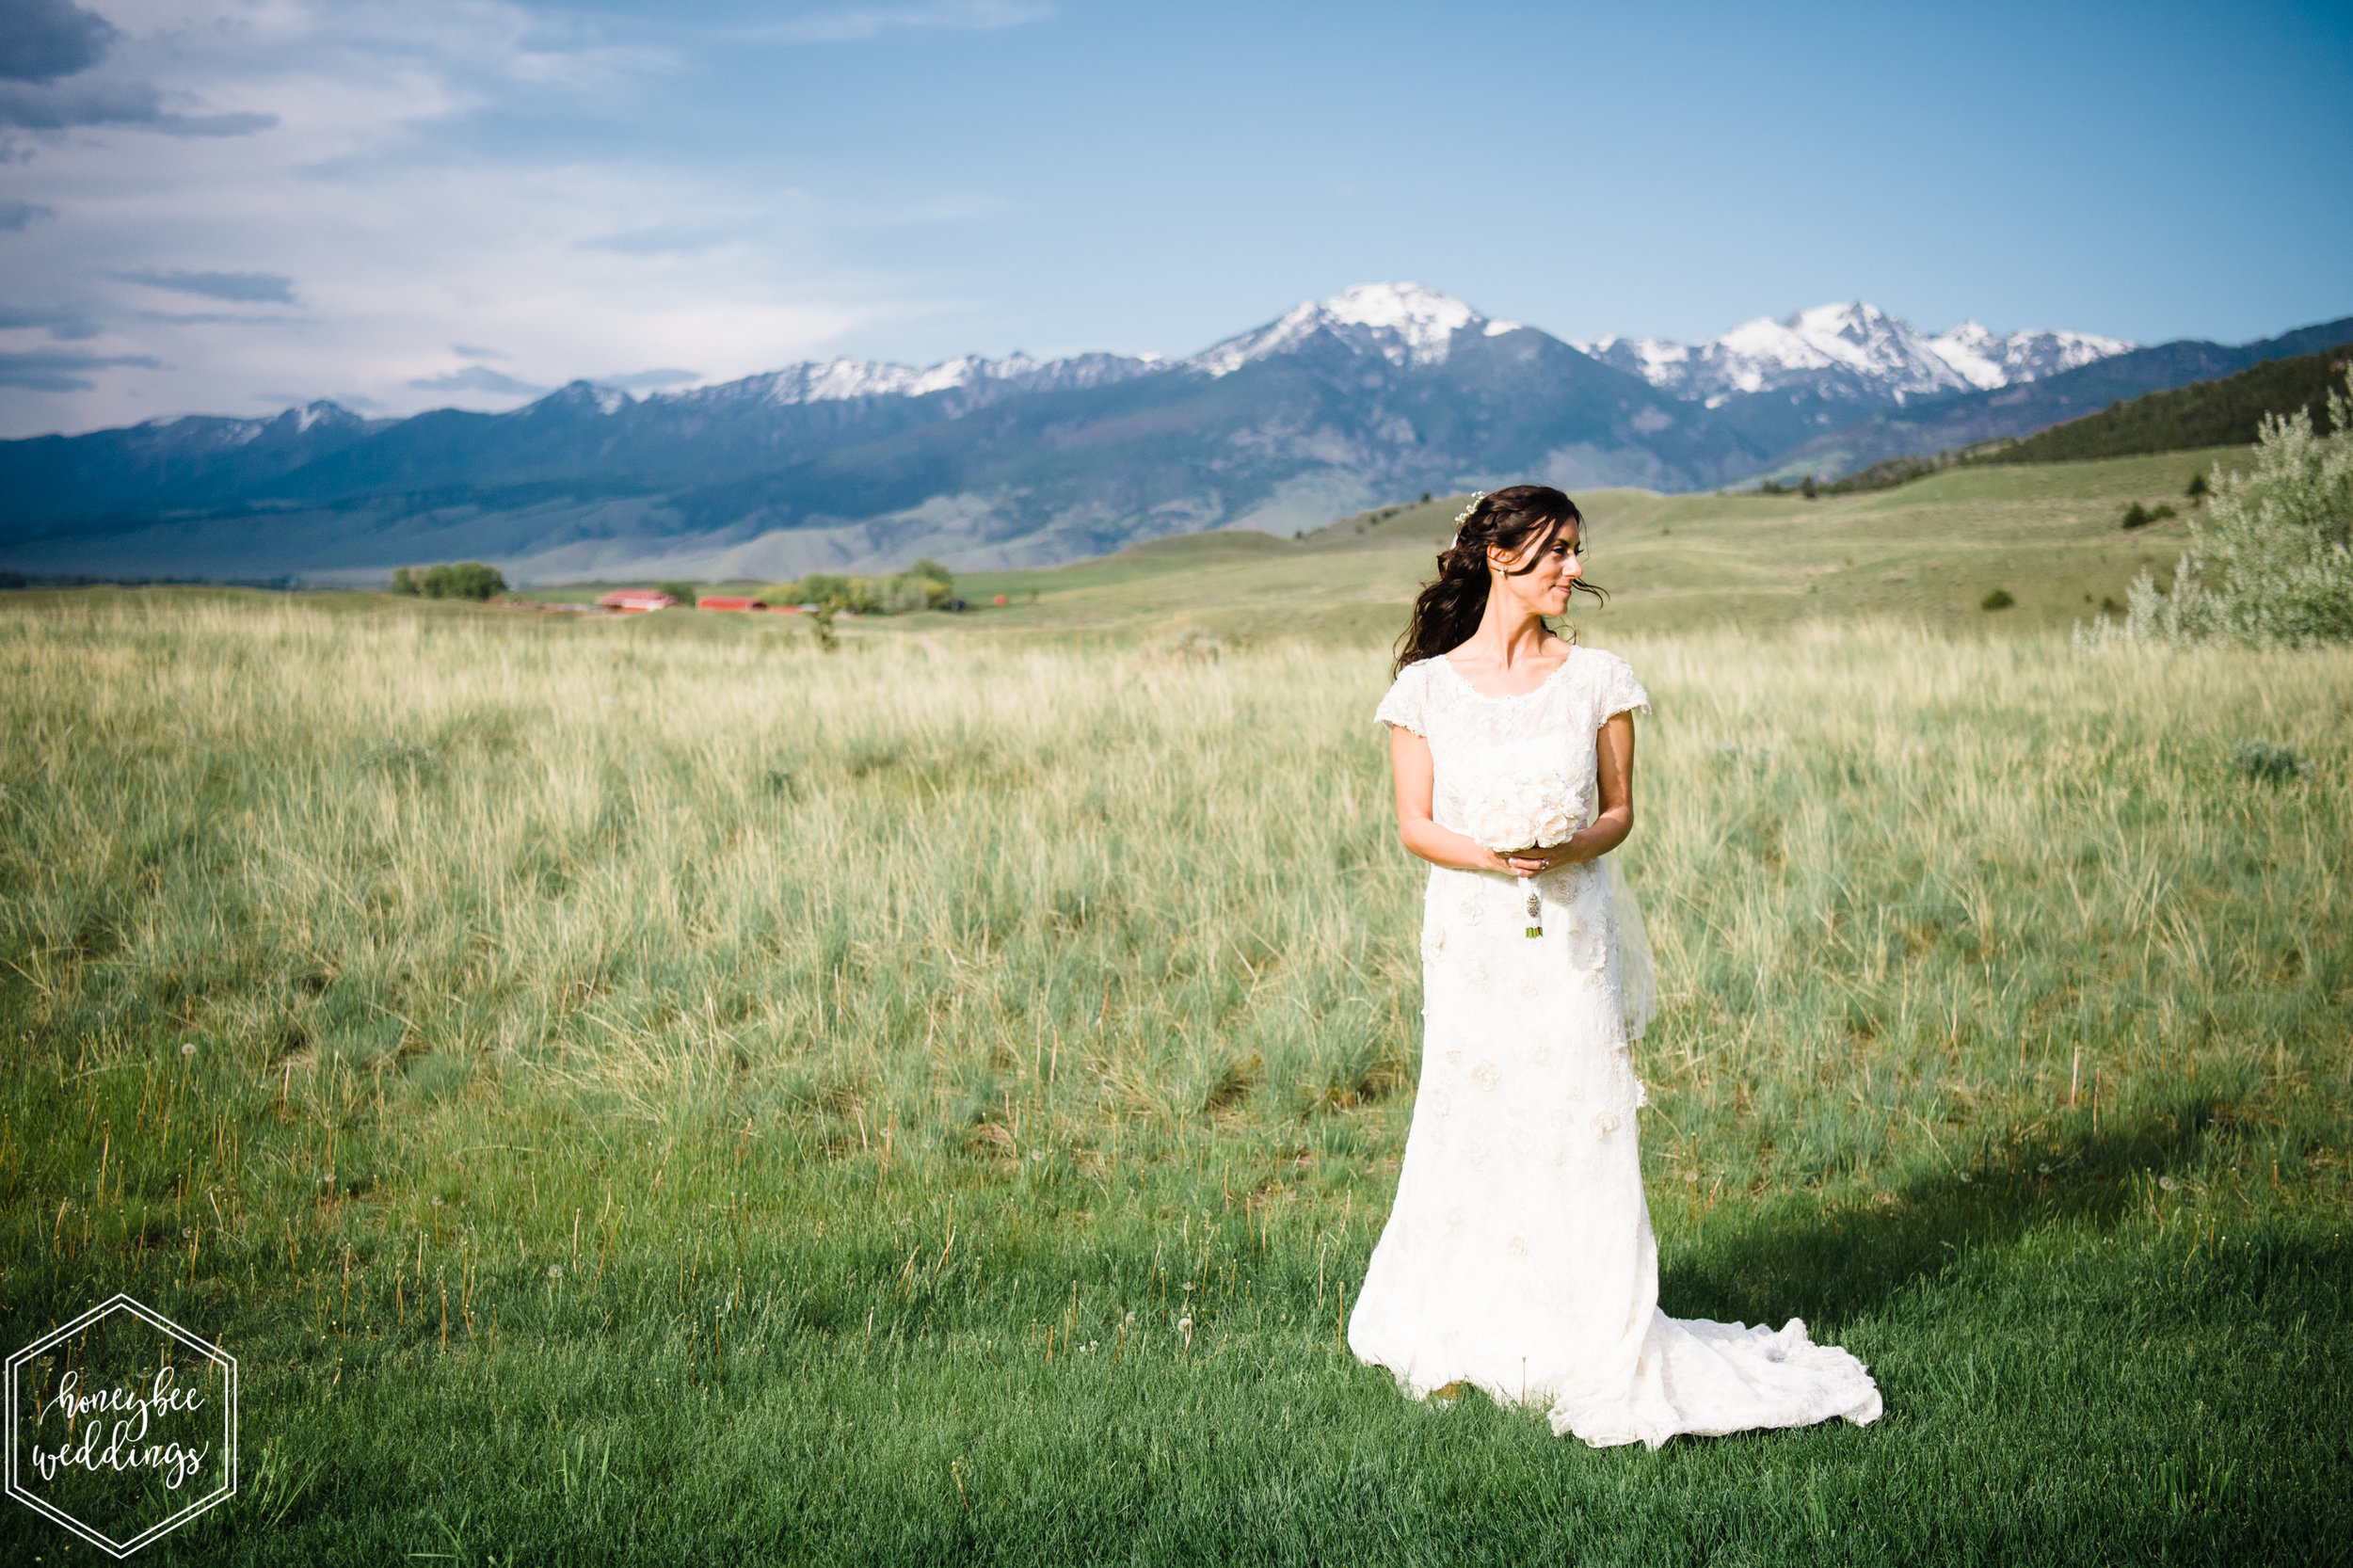 032Montana wedding photographer videographer_Chico hot springs wedding_Honeybee Weddings_Claudia & Bill_June 03, 2019-654.jpg